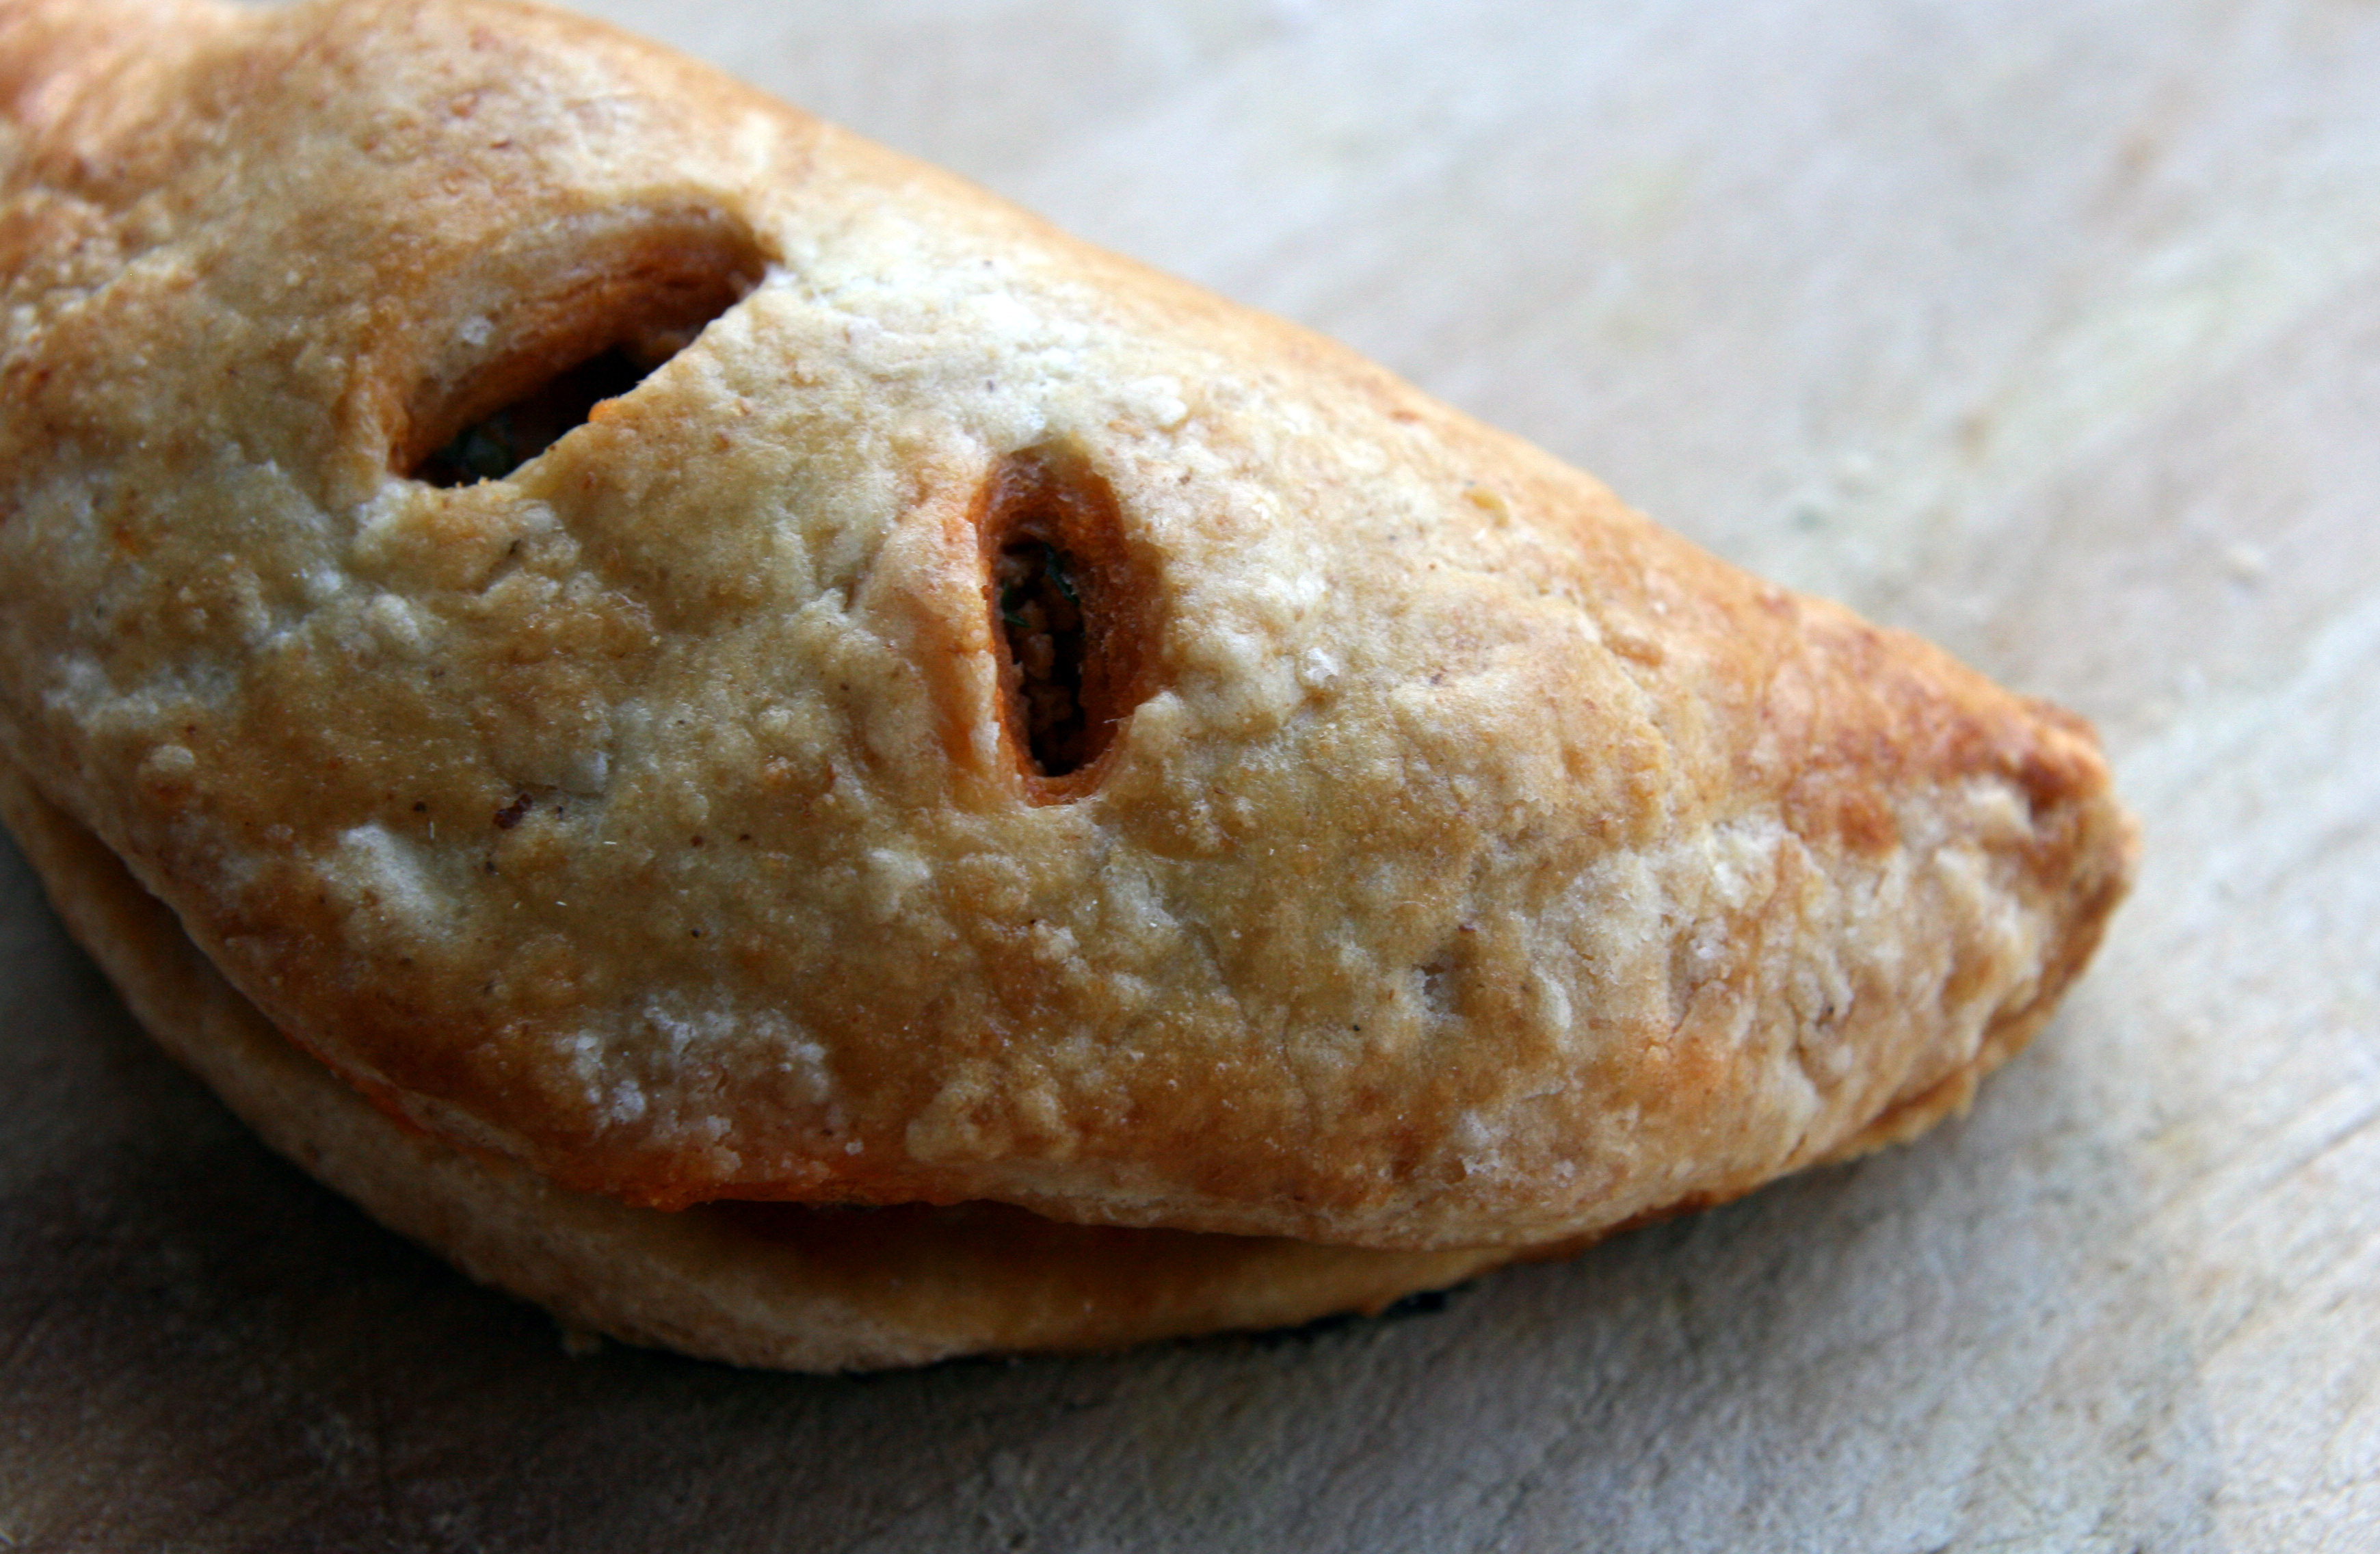 Smoky Tuna-Cauliflower Turnovers in an Orange-Scented Dough